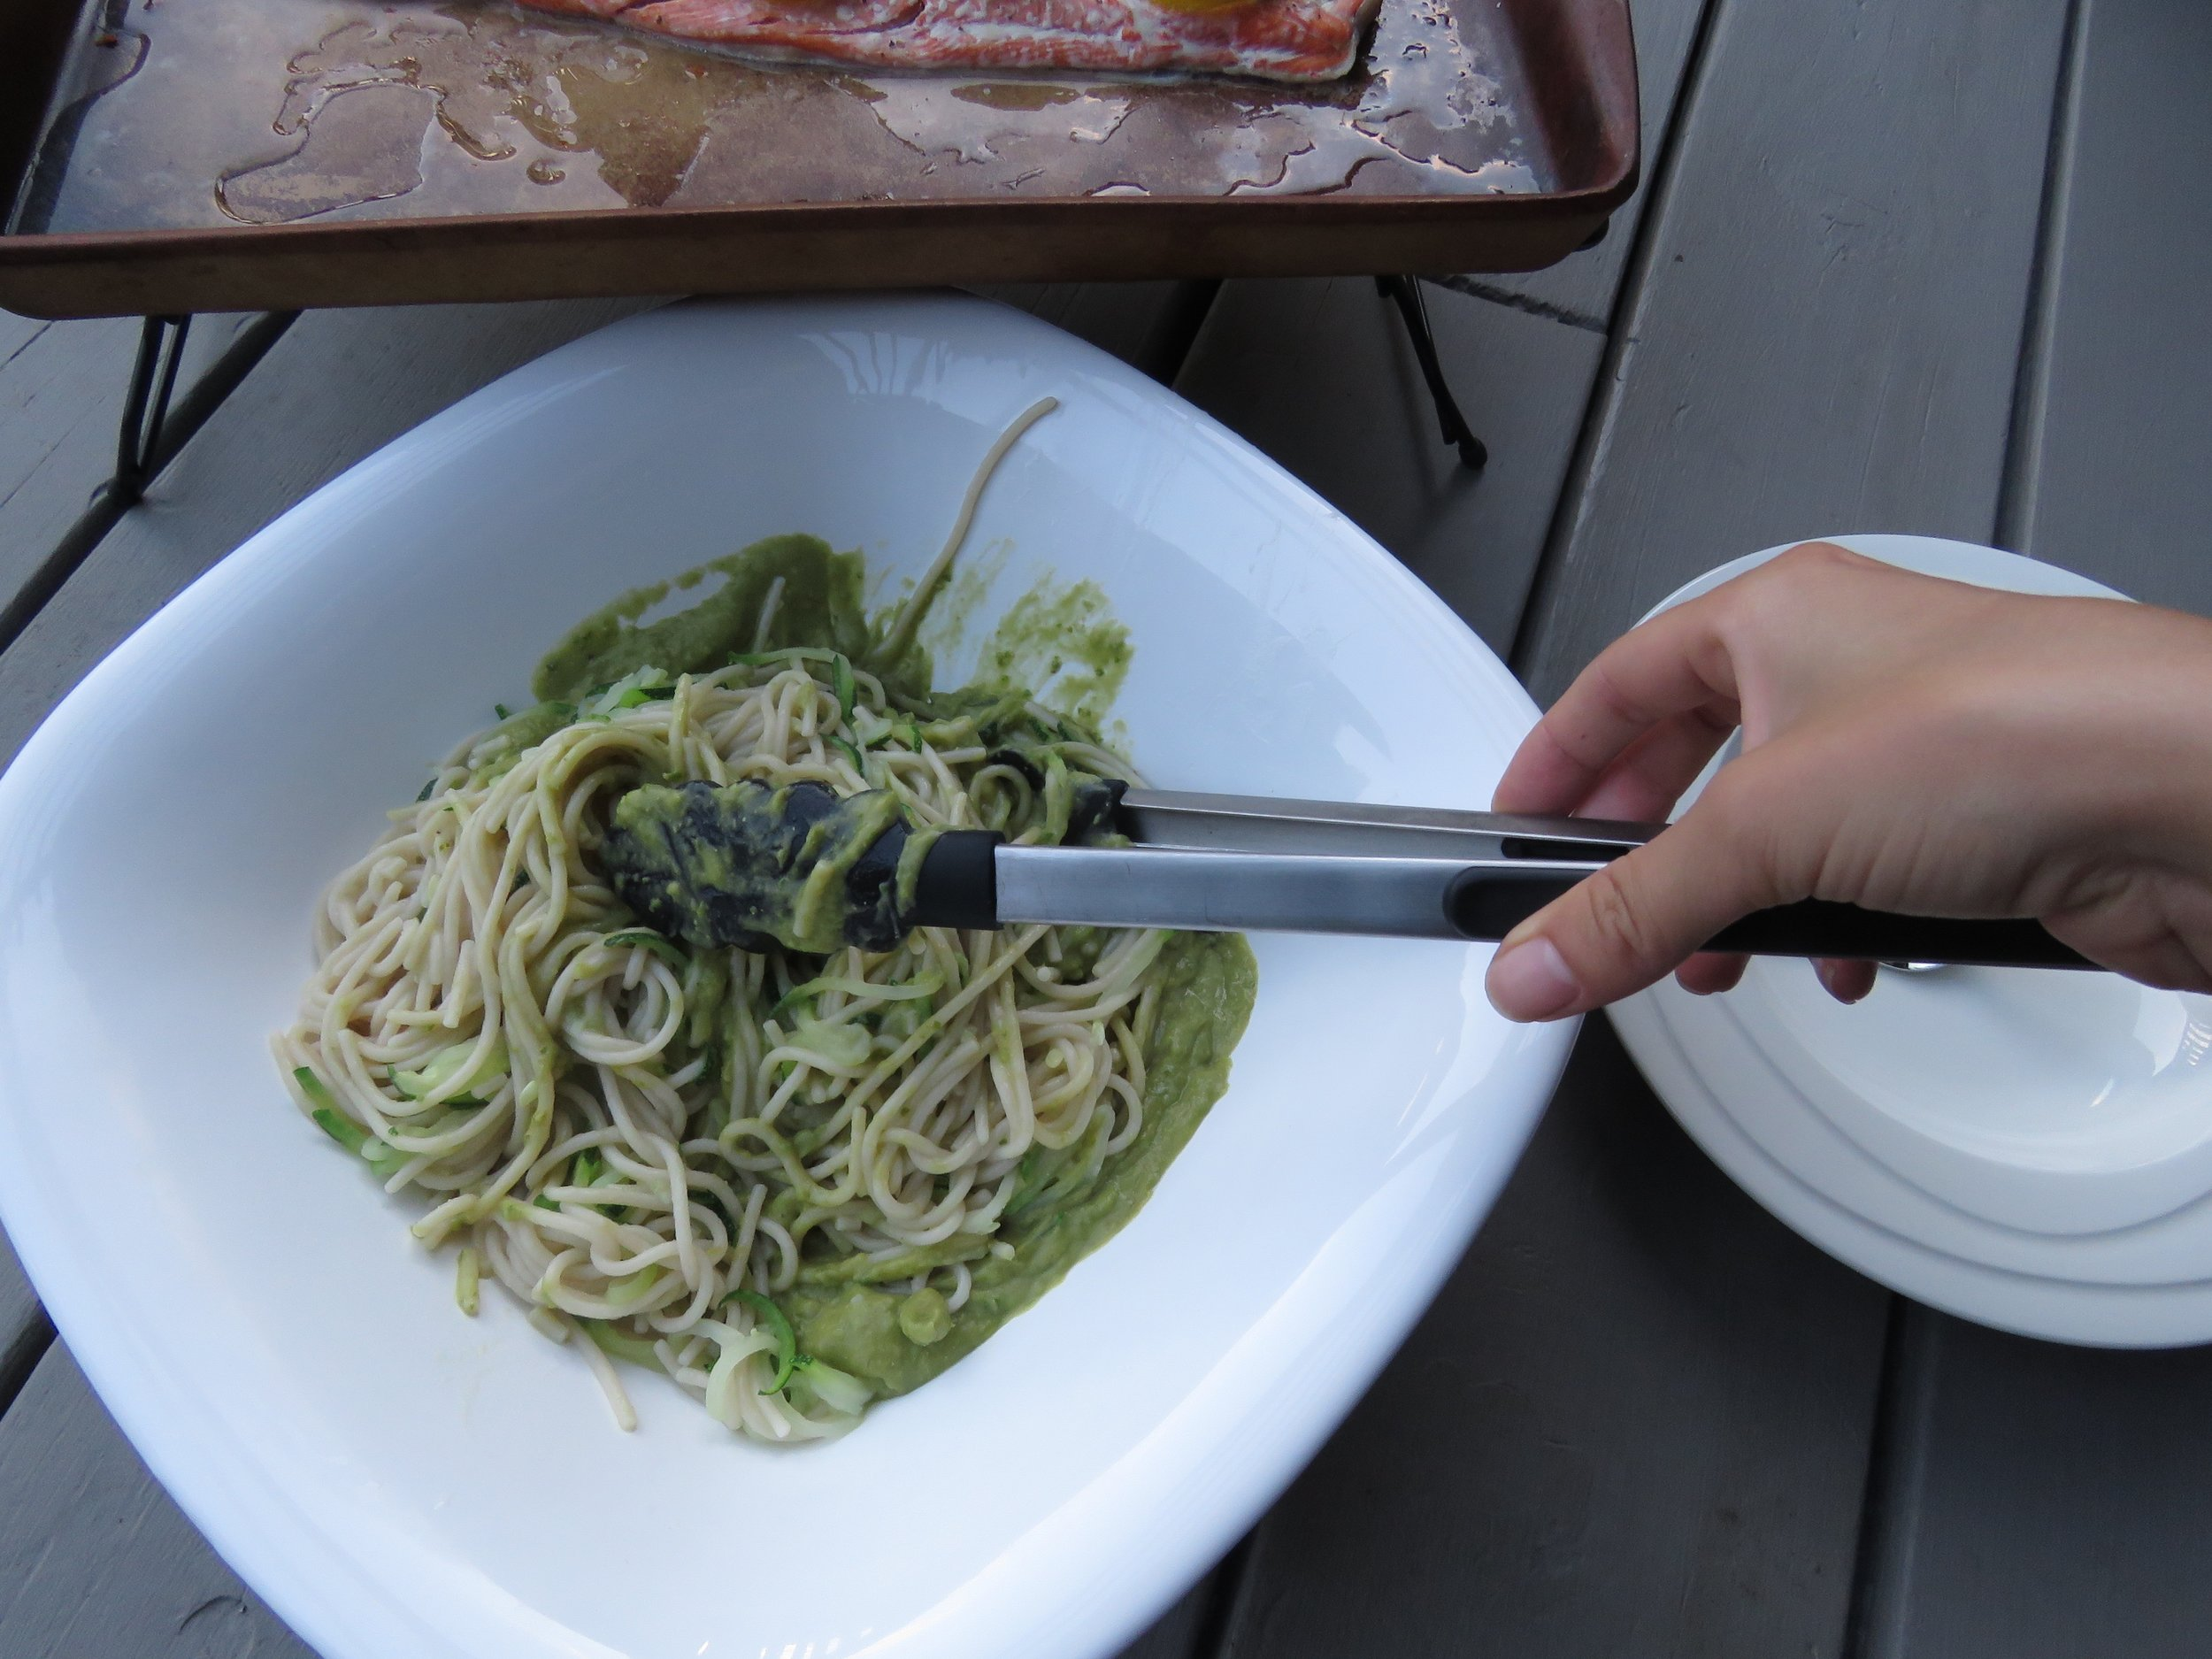 Cutting pasta 1/2 and 1/2 with zucchini noodles is a great little trick to increase the volume and veggies in your meal!